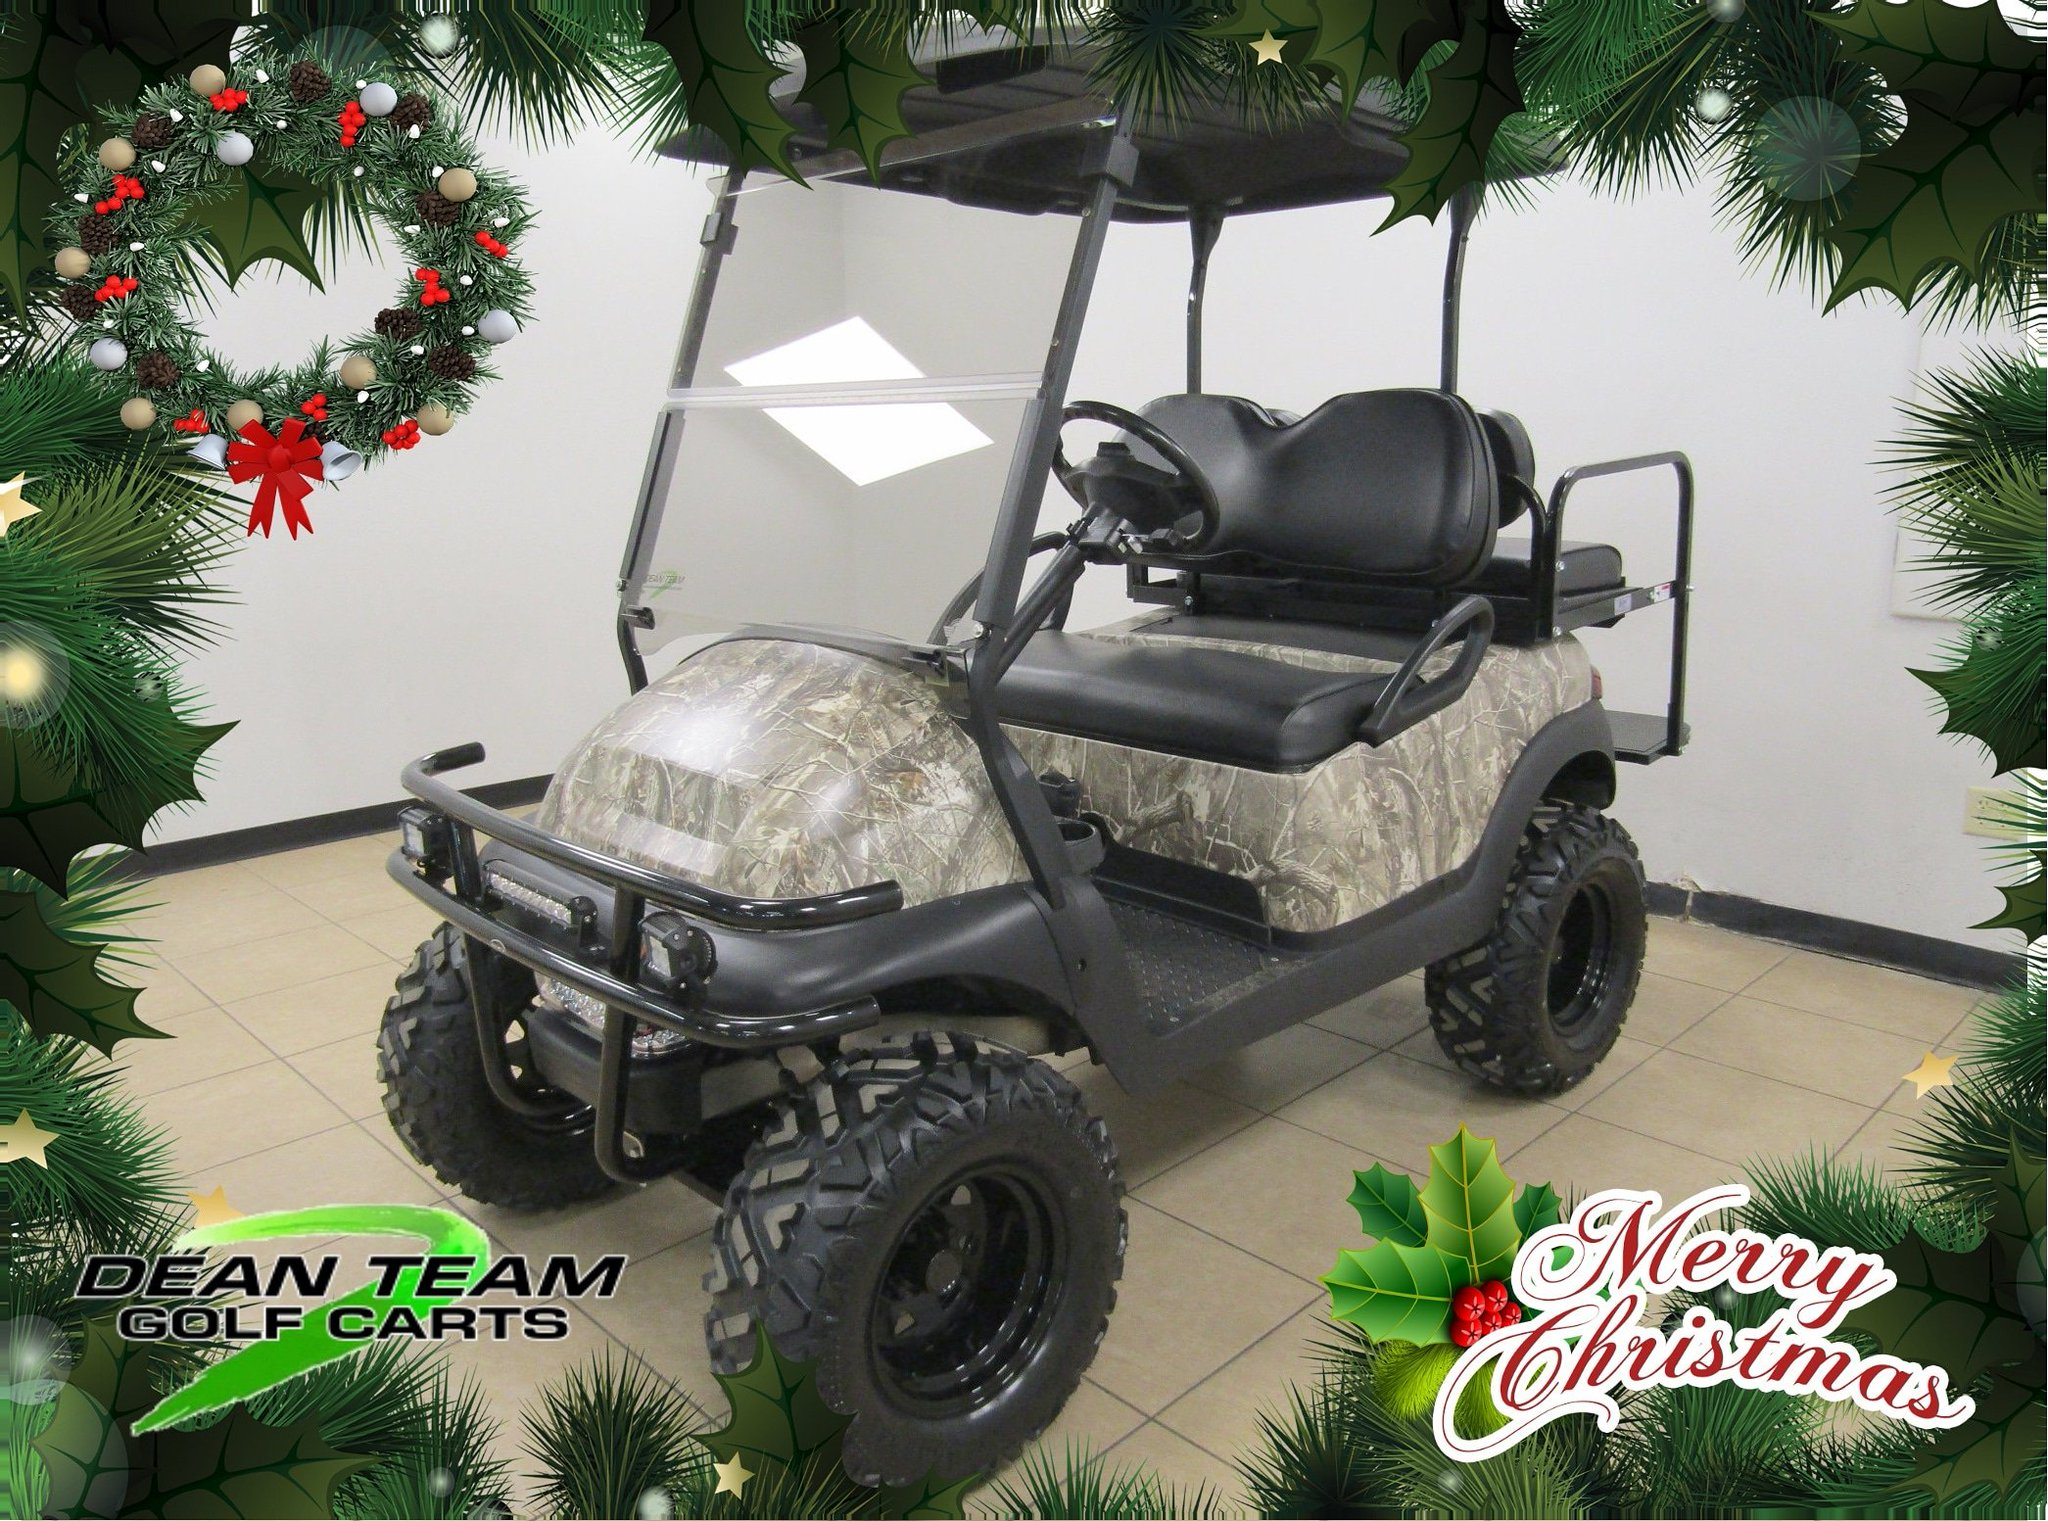 """Dean Team Golf Carts on Twitter """" the 2nd day of"""